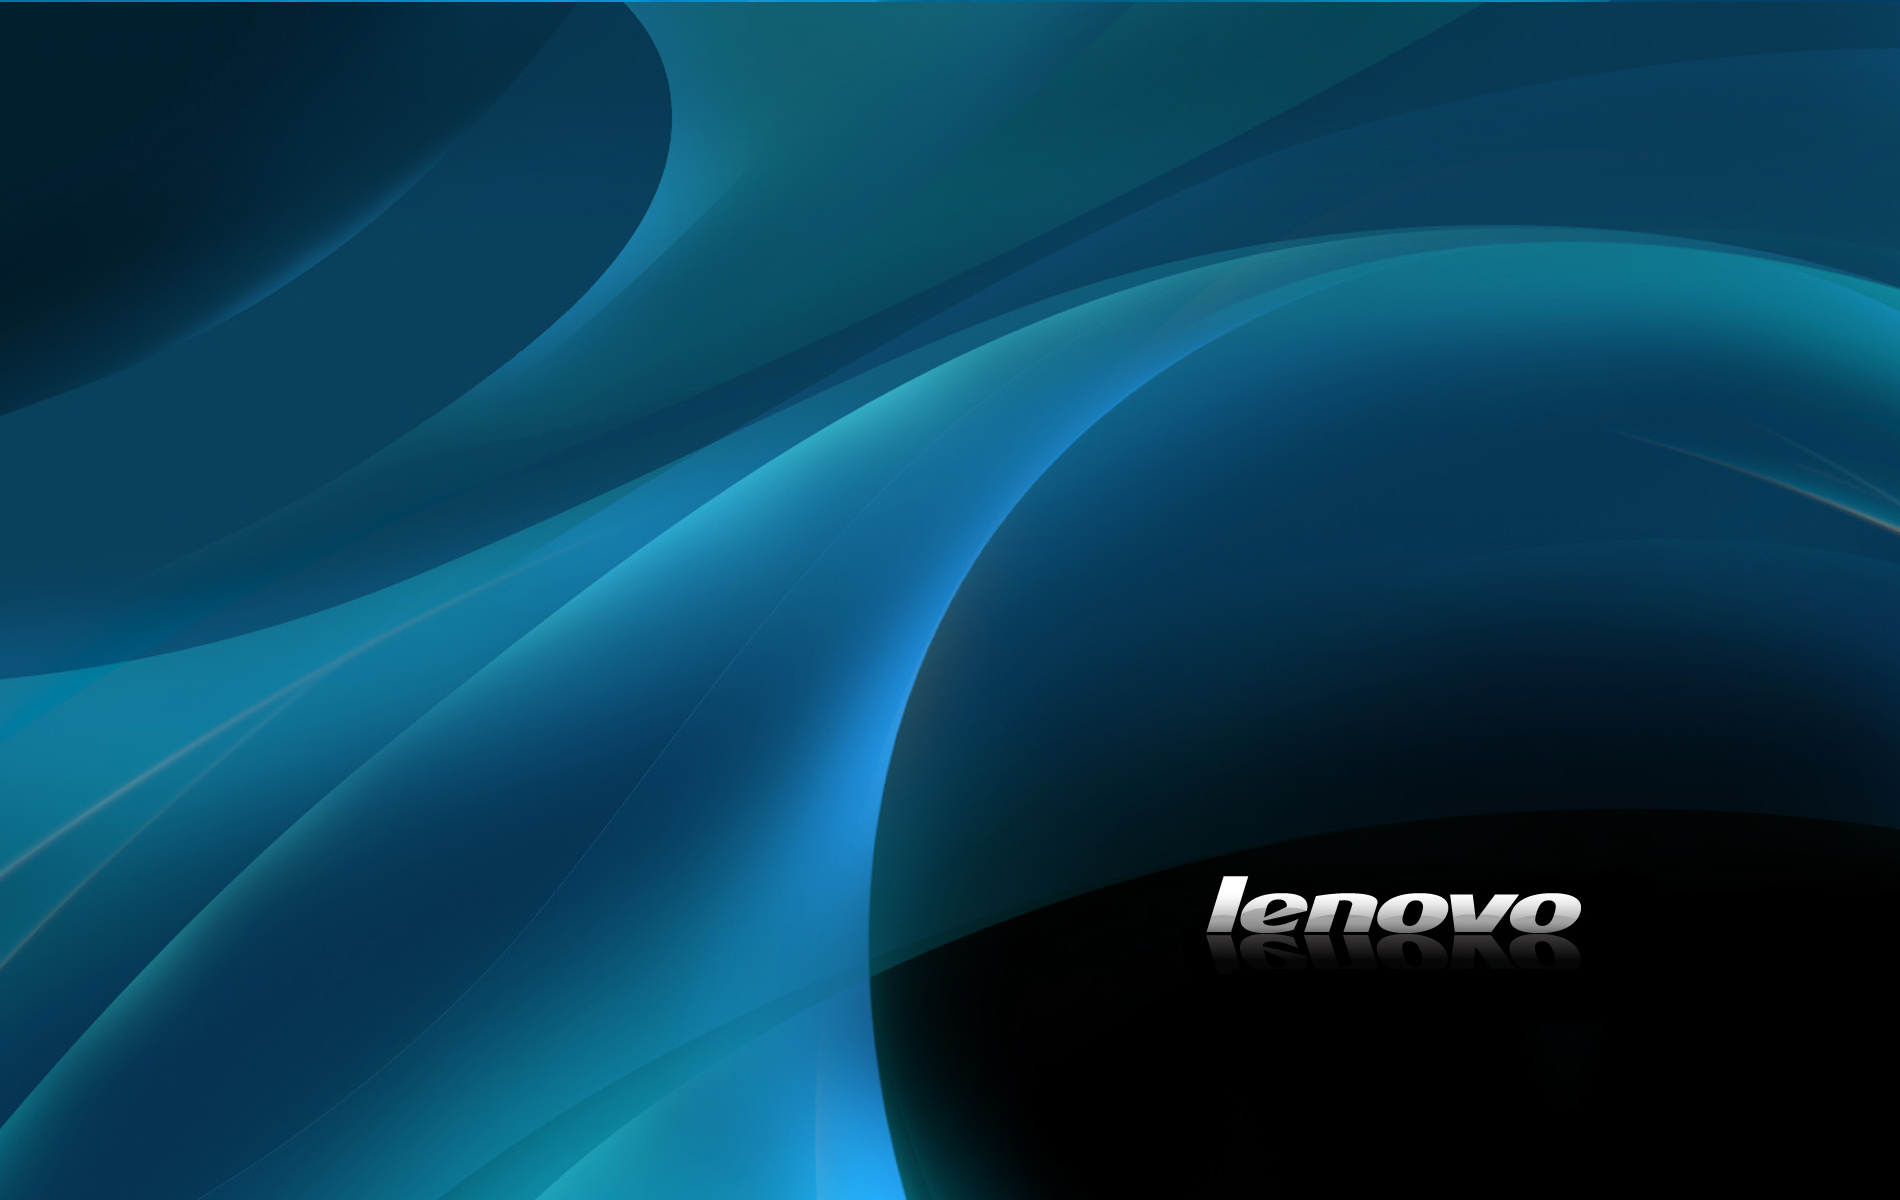 Lenovo becomes No. 2 PC maker in the world